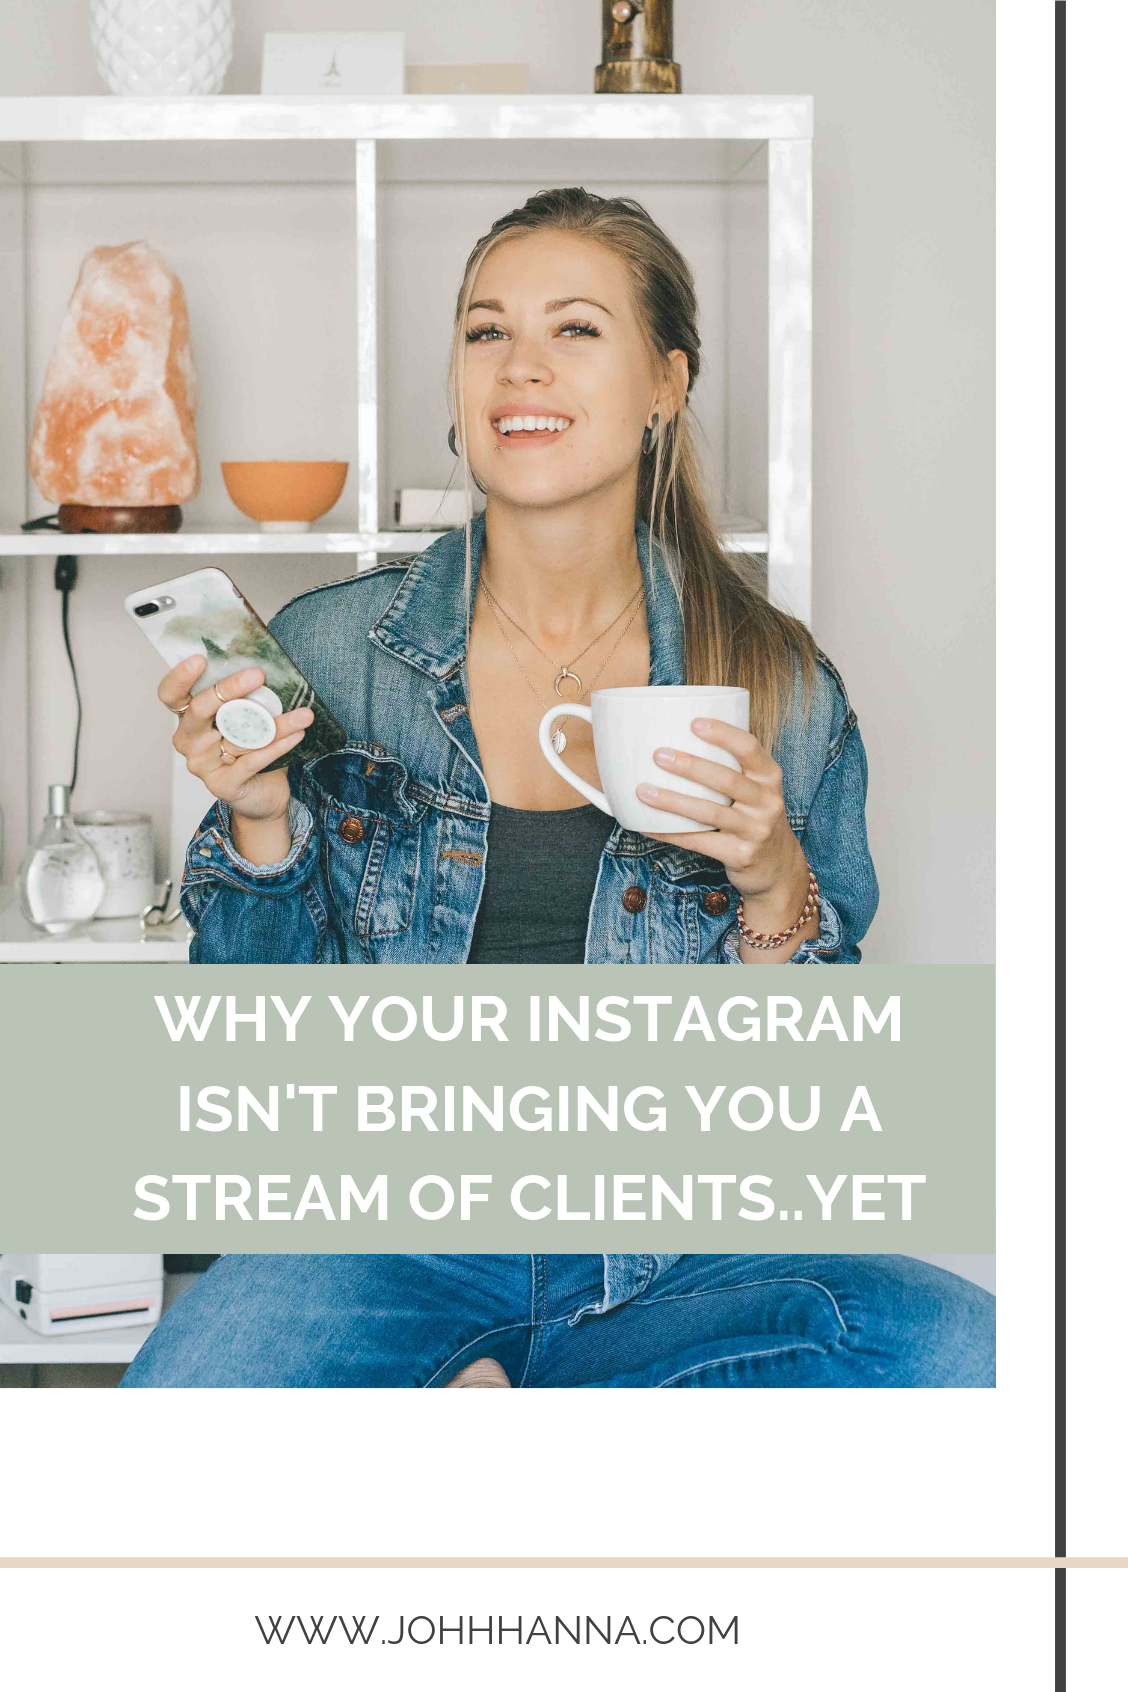 how-to-attract-clients-into-your-business-through-instagram.png